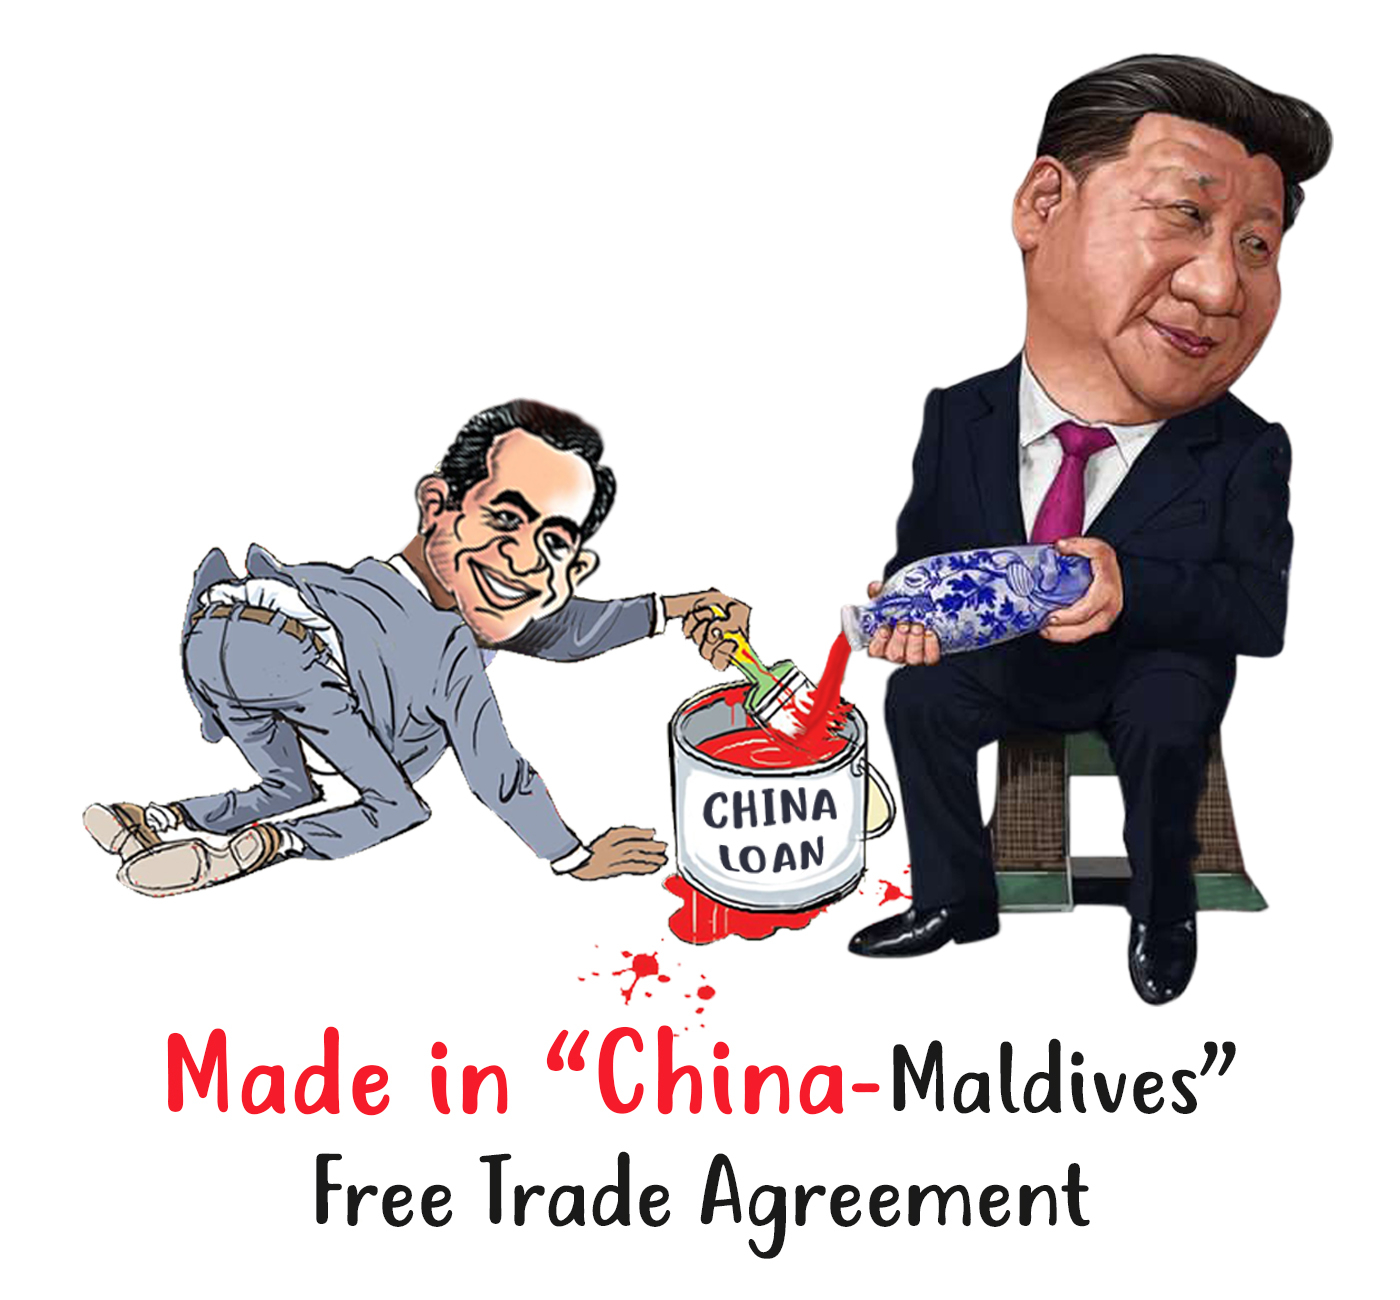 Free Trade Agreement With China Made In China Maldives Free Trade Agreement Maldives Uprising